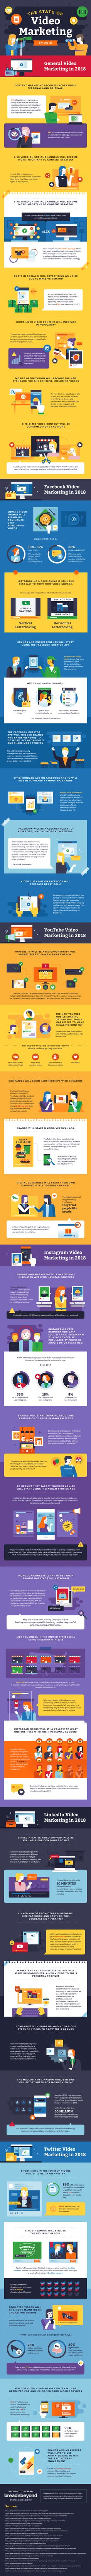 The State of Video Marketing in 2018 - #infographic #videomarketing